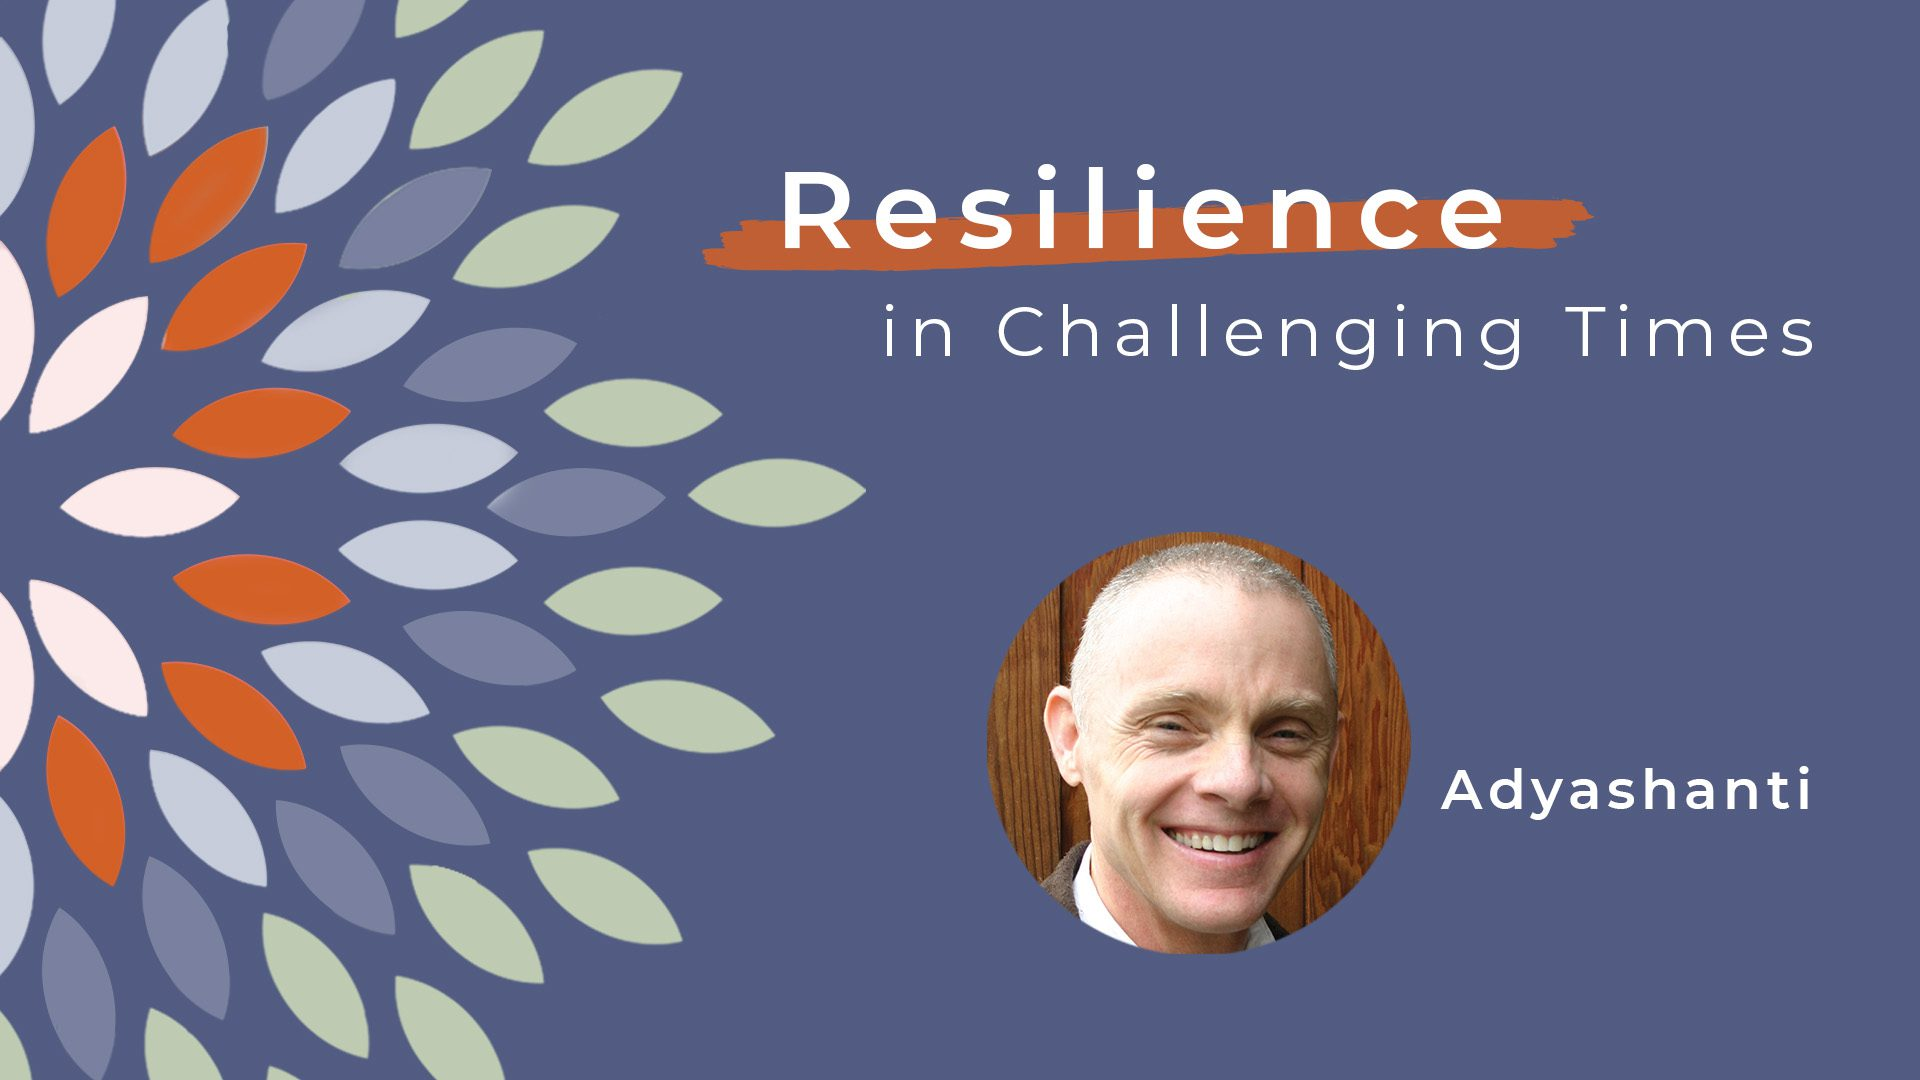 Resiliece-video-Adyashanti-title-card